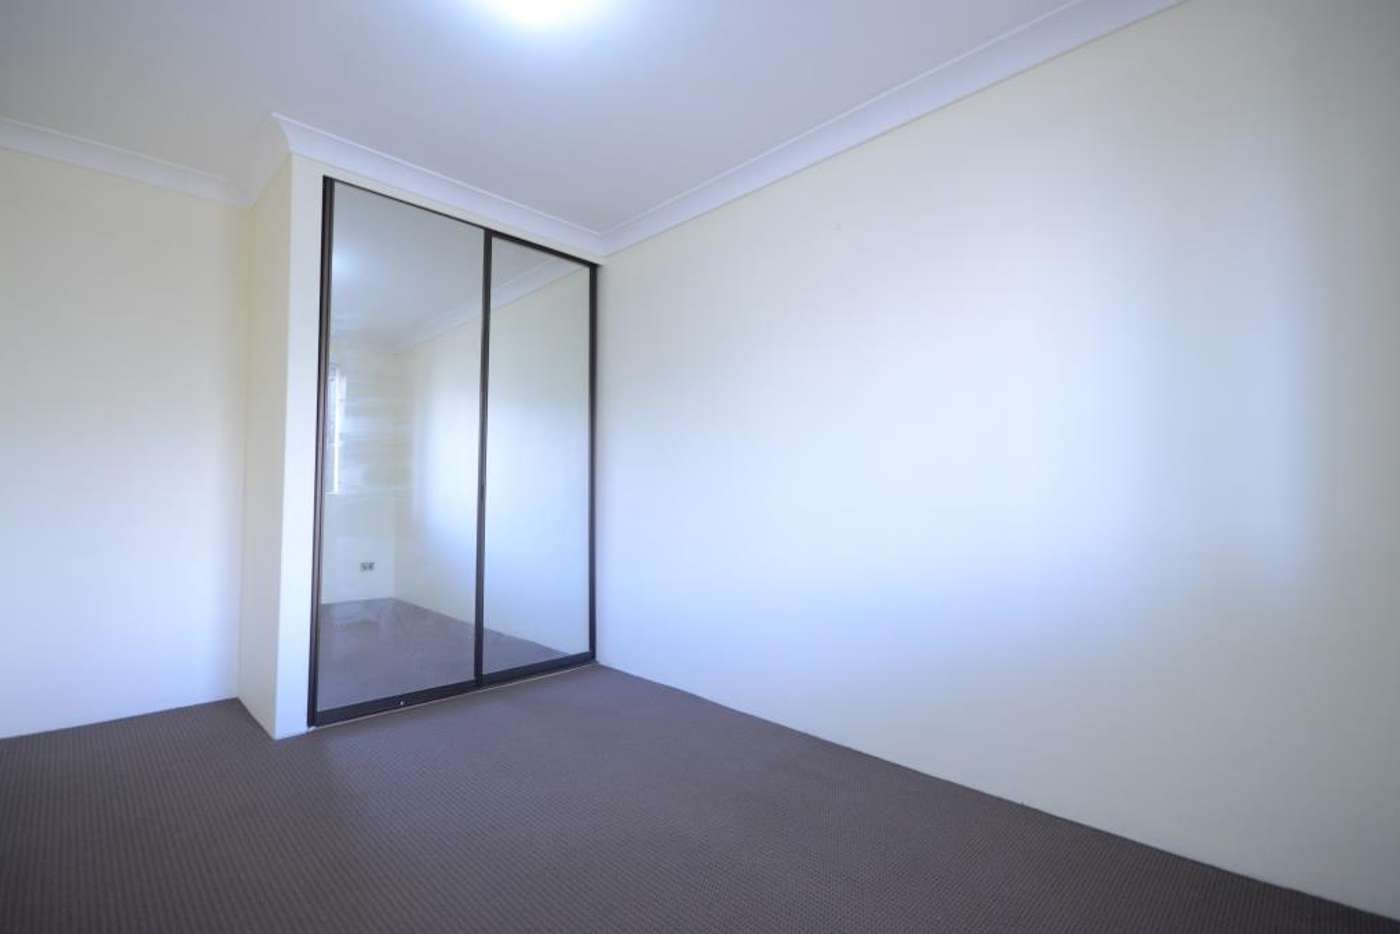 Seventh view of Homely townhouse listing, 4/1 Reid Ave, Westmead NSW 2145